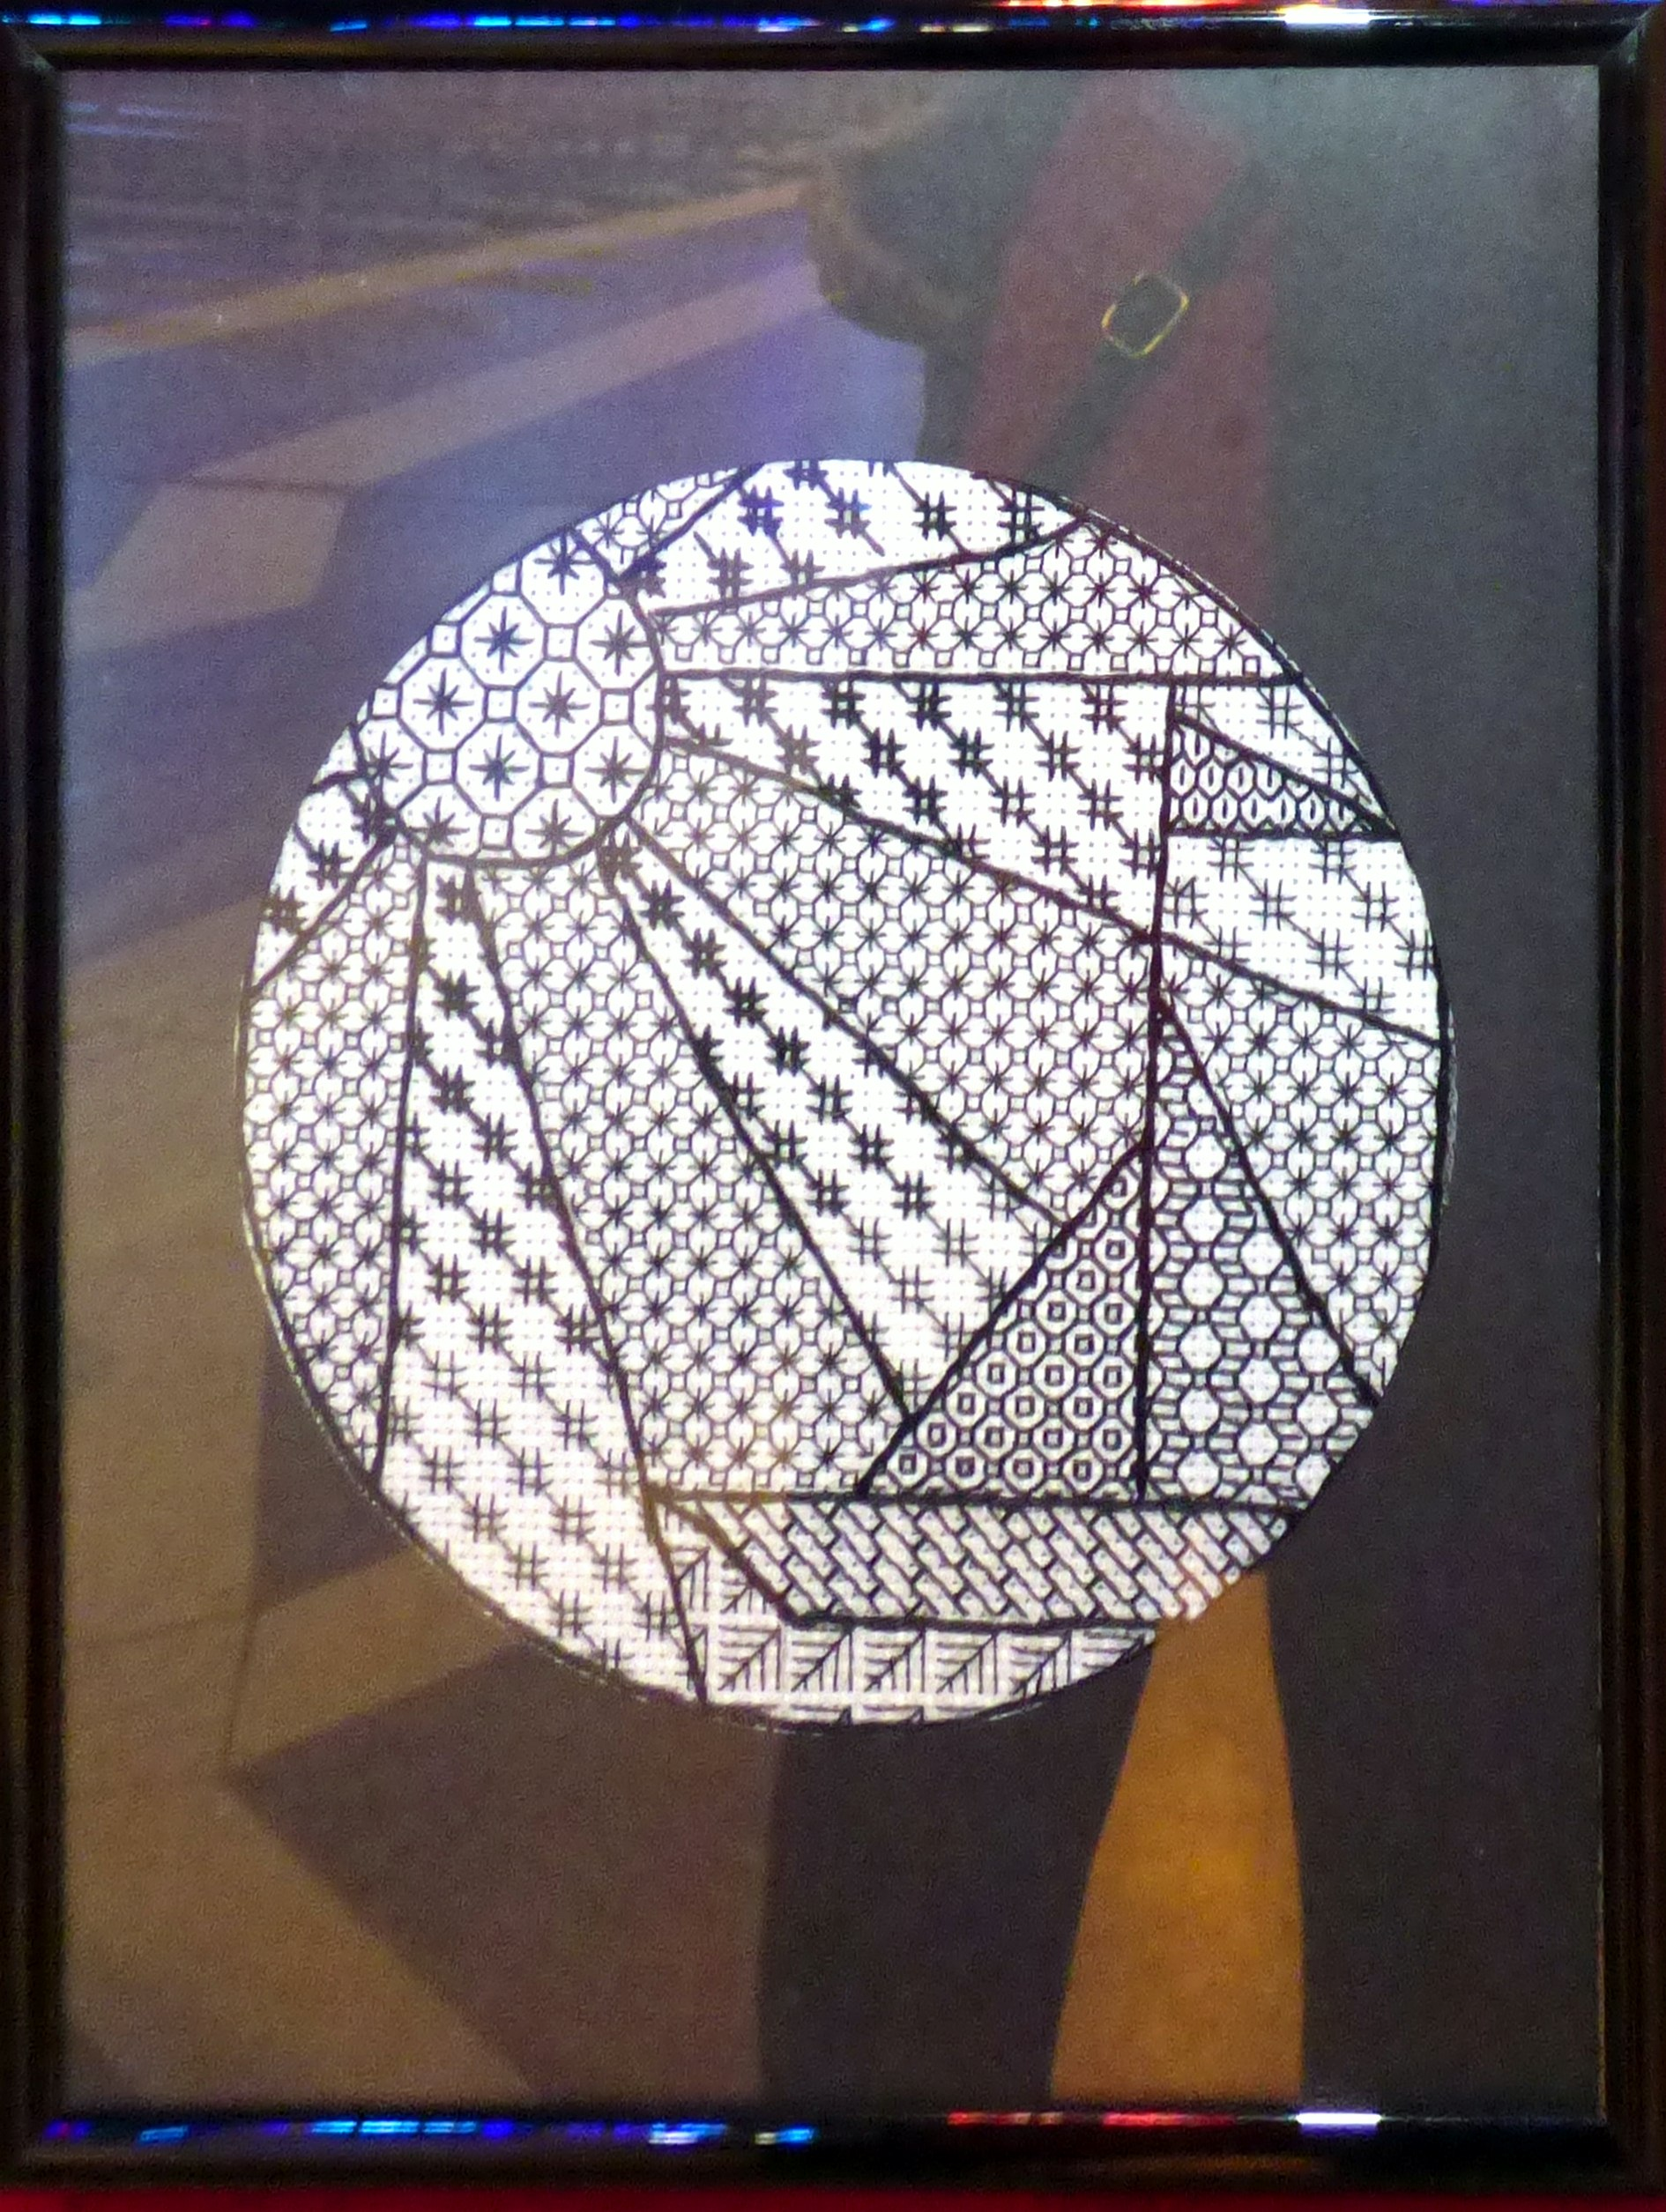 BLACKWORK by A.Kefford, at Embroidery for Pleasure exhibition, Liverpool Metropolitan Cathedral 2016